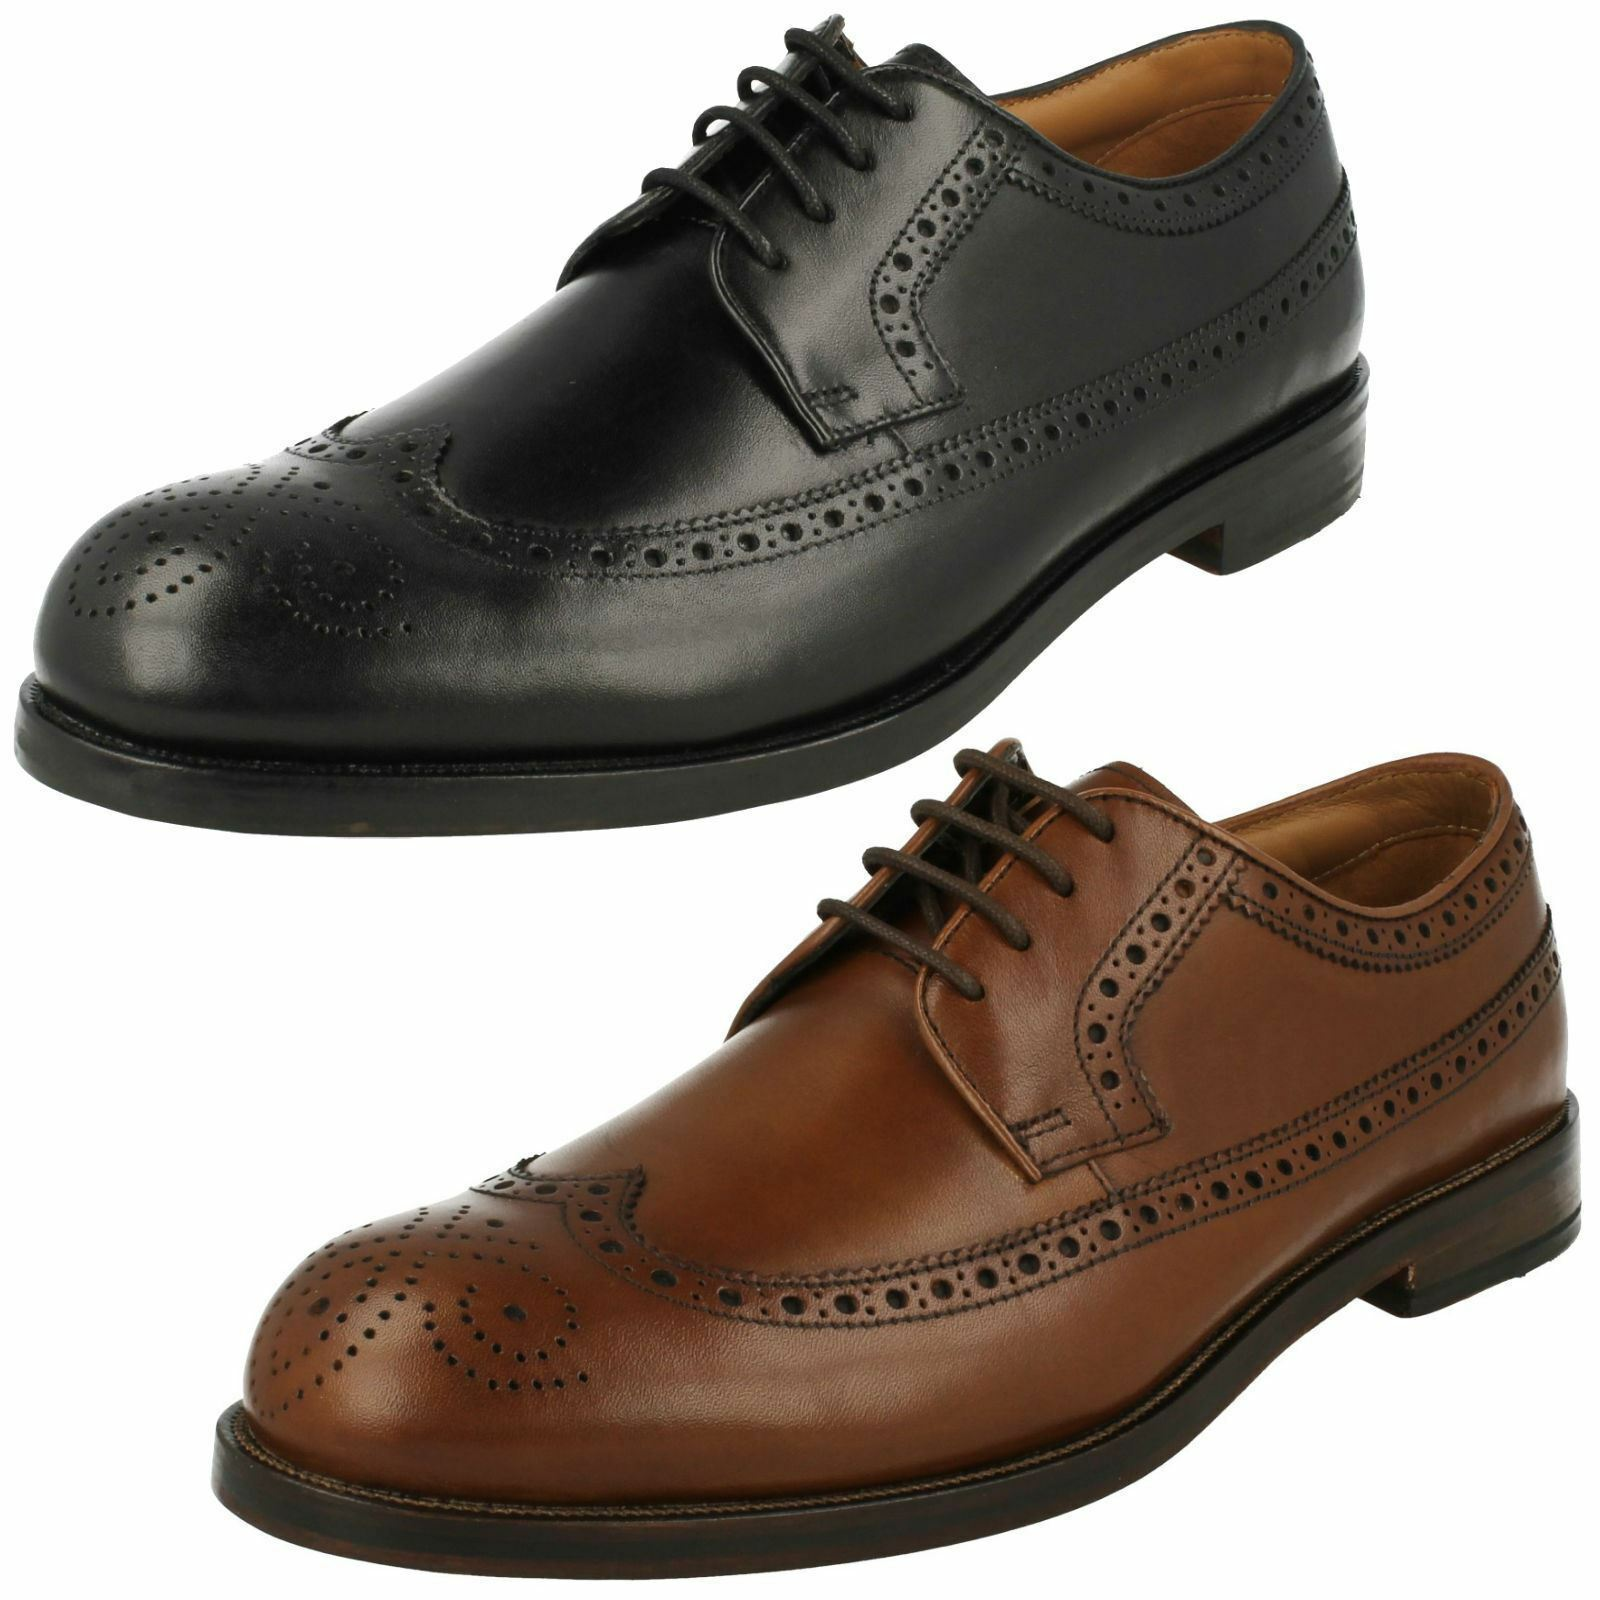 Mens Clarks Coling Limit Smart Leather Lace Up shoes G Fitting